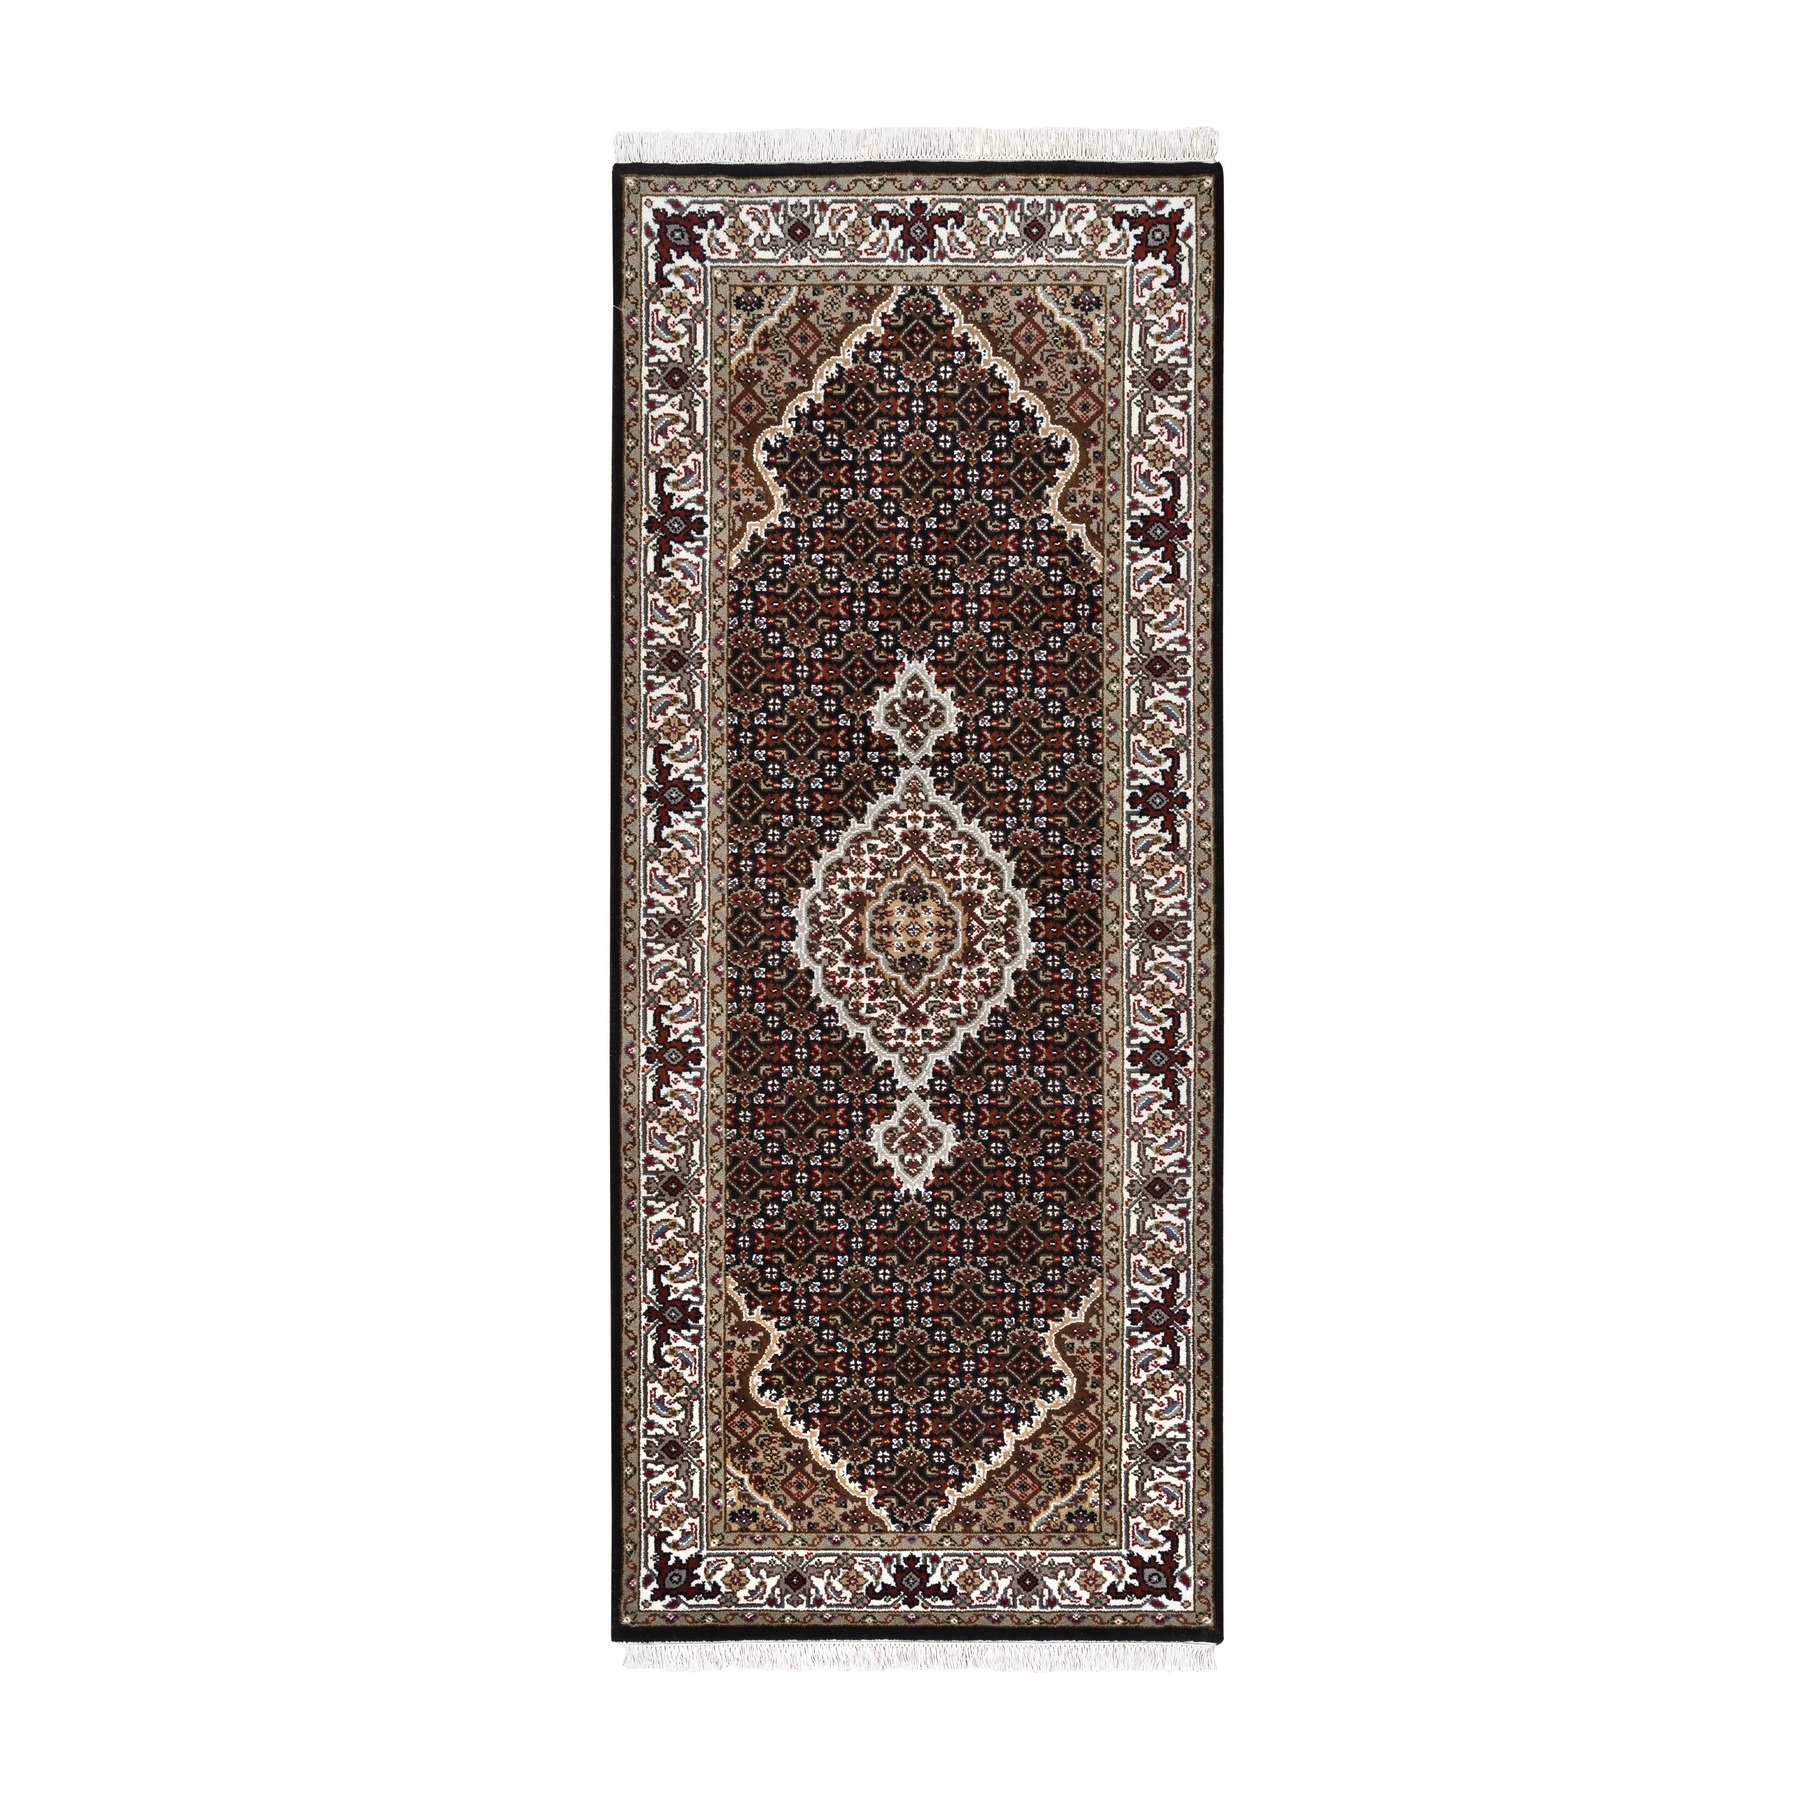 "2'7""x6'2"" Hand Woven Black Wool And Silk Fish Medallion Design Tabriz Mahi Oriental Runner Rug"